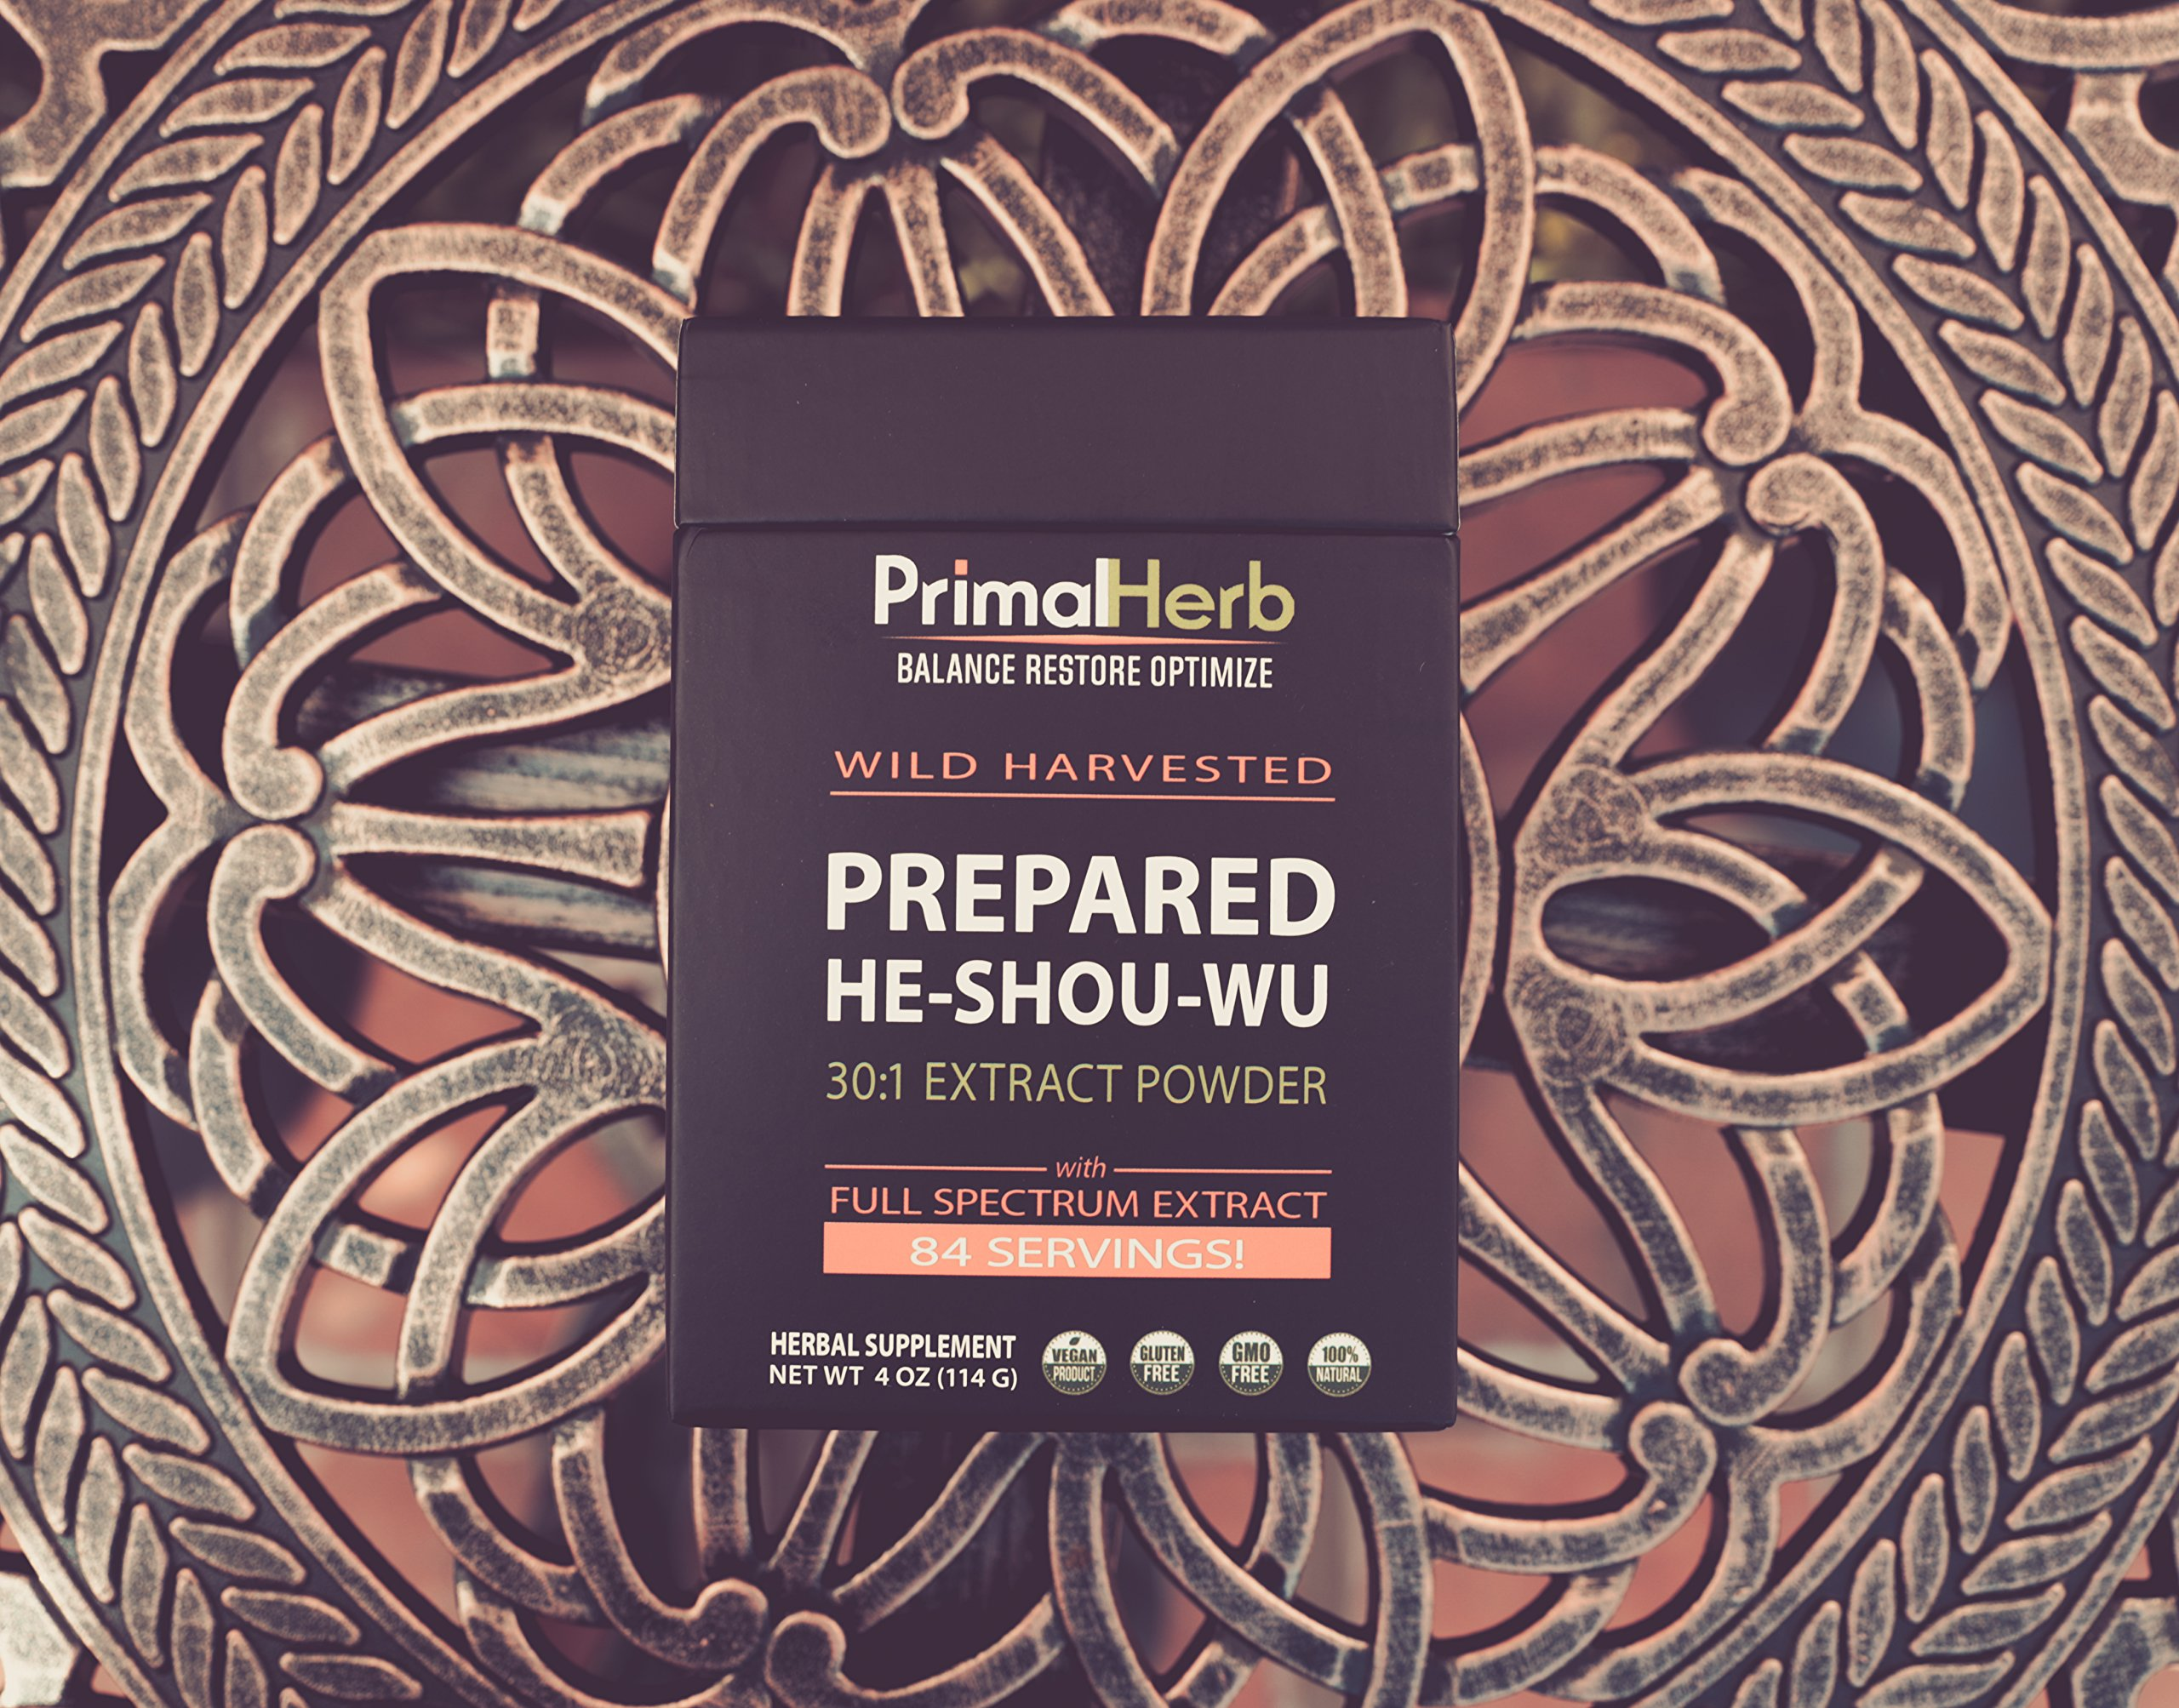 He Shou Wu Fo ti Root Extract Powder - by Primal Herb | Longevity Tea - Supports Hair Growth & Glowing Skin | Organic Potent 30:1-84 Servings - Aged Roots | Includes Bamboo Spoon by Primal Herb (Image #6)